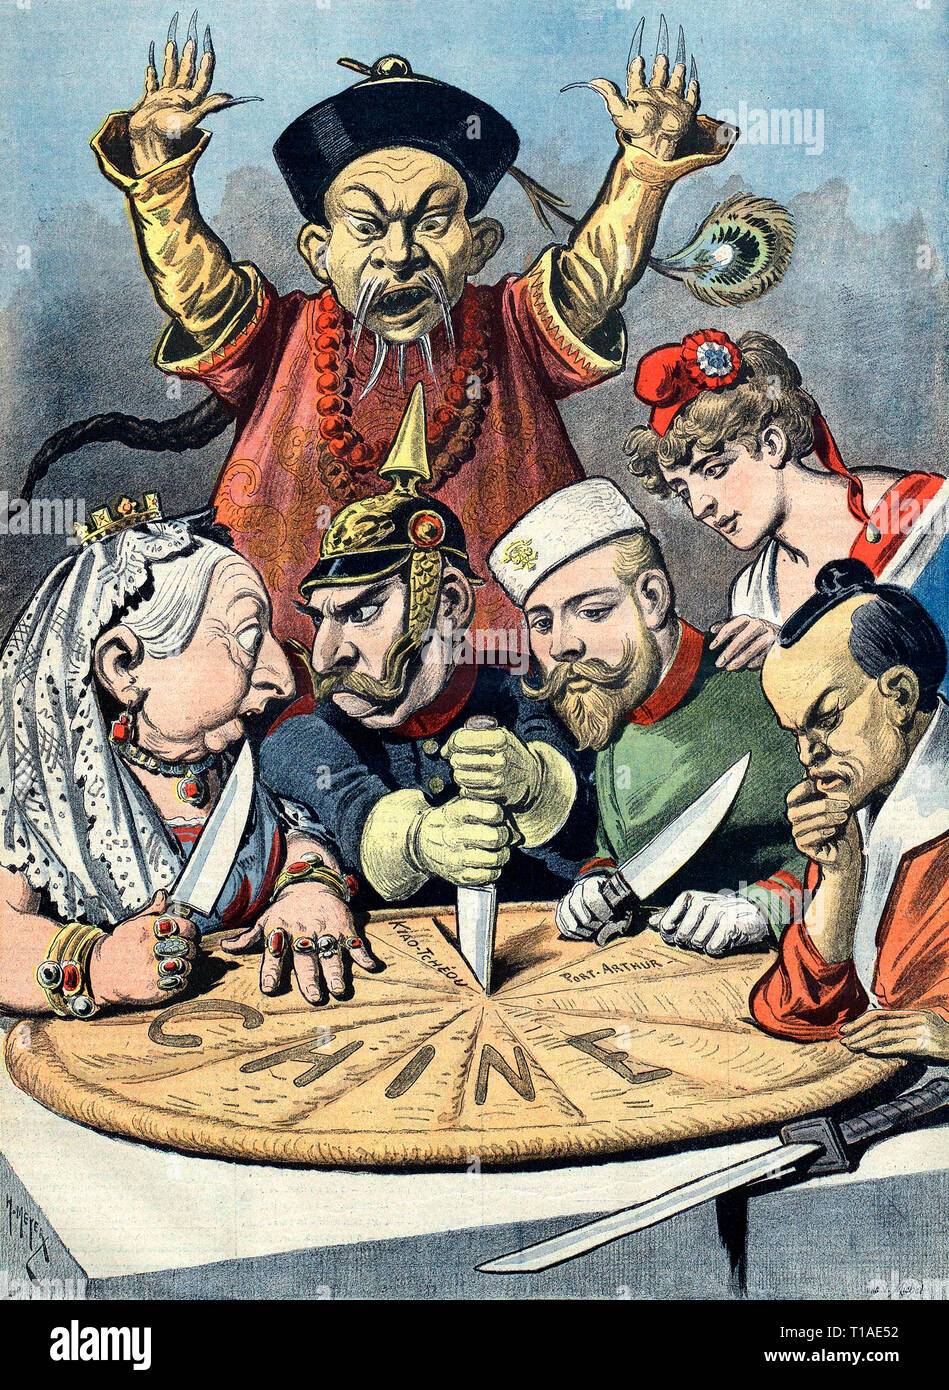 "China -- the cake of kings and... of emperors"" (a French pun on king cake and kings and emperors wishing to ""consume"" China). French political cartoon from 1898. A pastry represents ""Chine"" (French for China) and is being divided between caricatures of Queen Victoria of the United Kingdom, William II of Germany (who is squabbling with Queen Victoria over a borderland piece, whilst thrusting a knife into the pie to signify aggressive German intentions), Nicholas II of Russia, who is eyeing a particular piece, the French Marianne (who is diplomatically shown as not participating in the carving T Stock Photo"